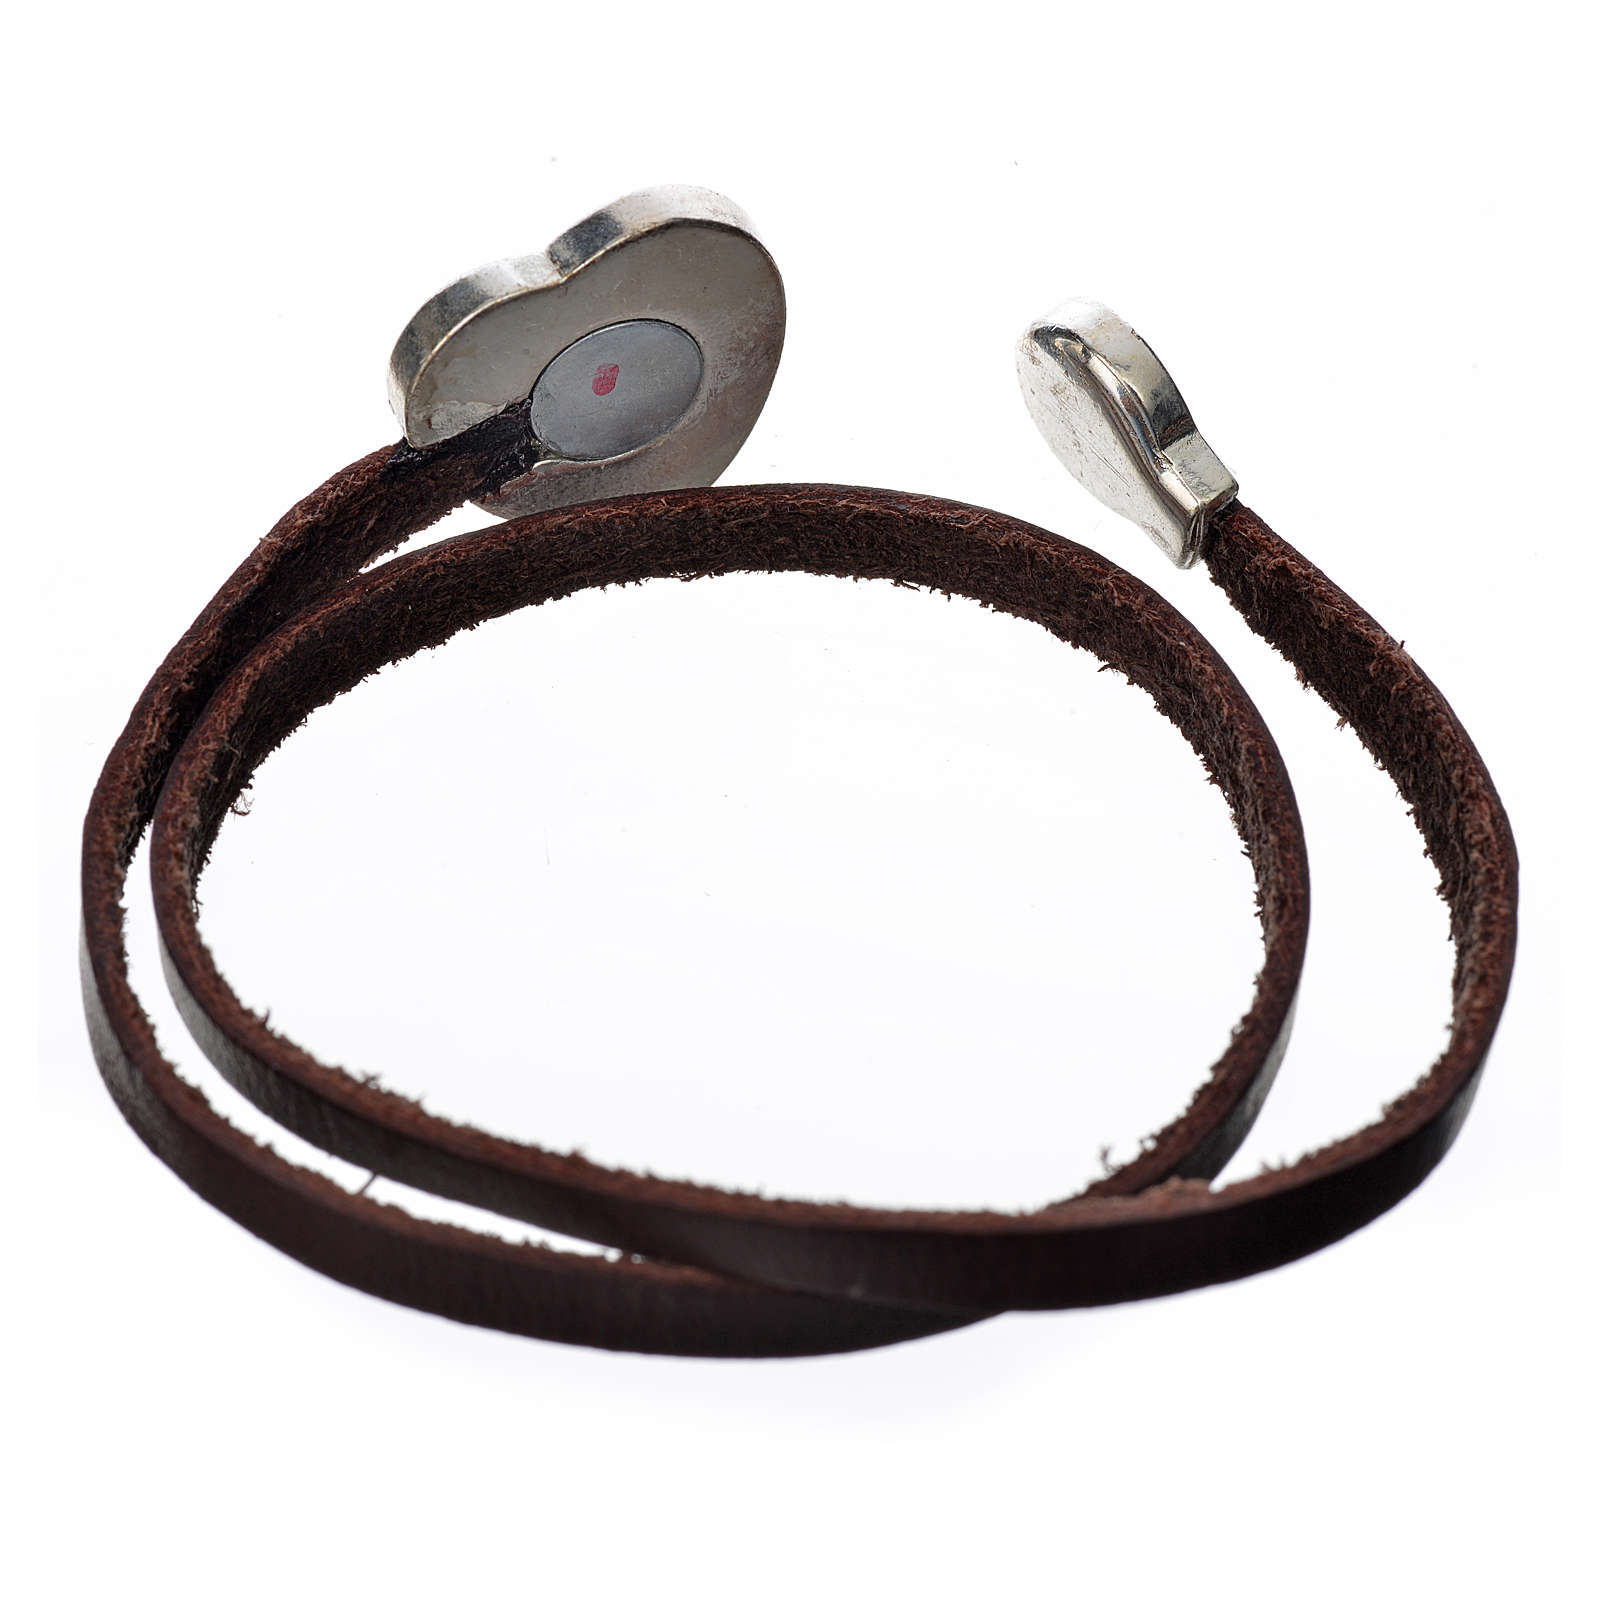 Choker necklace in dark brown leather with Virgin Mary pendant 4